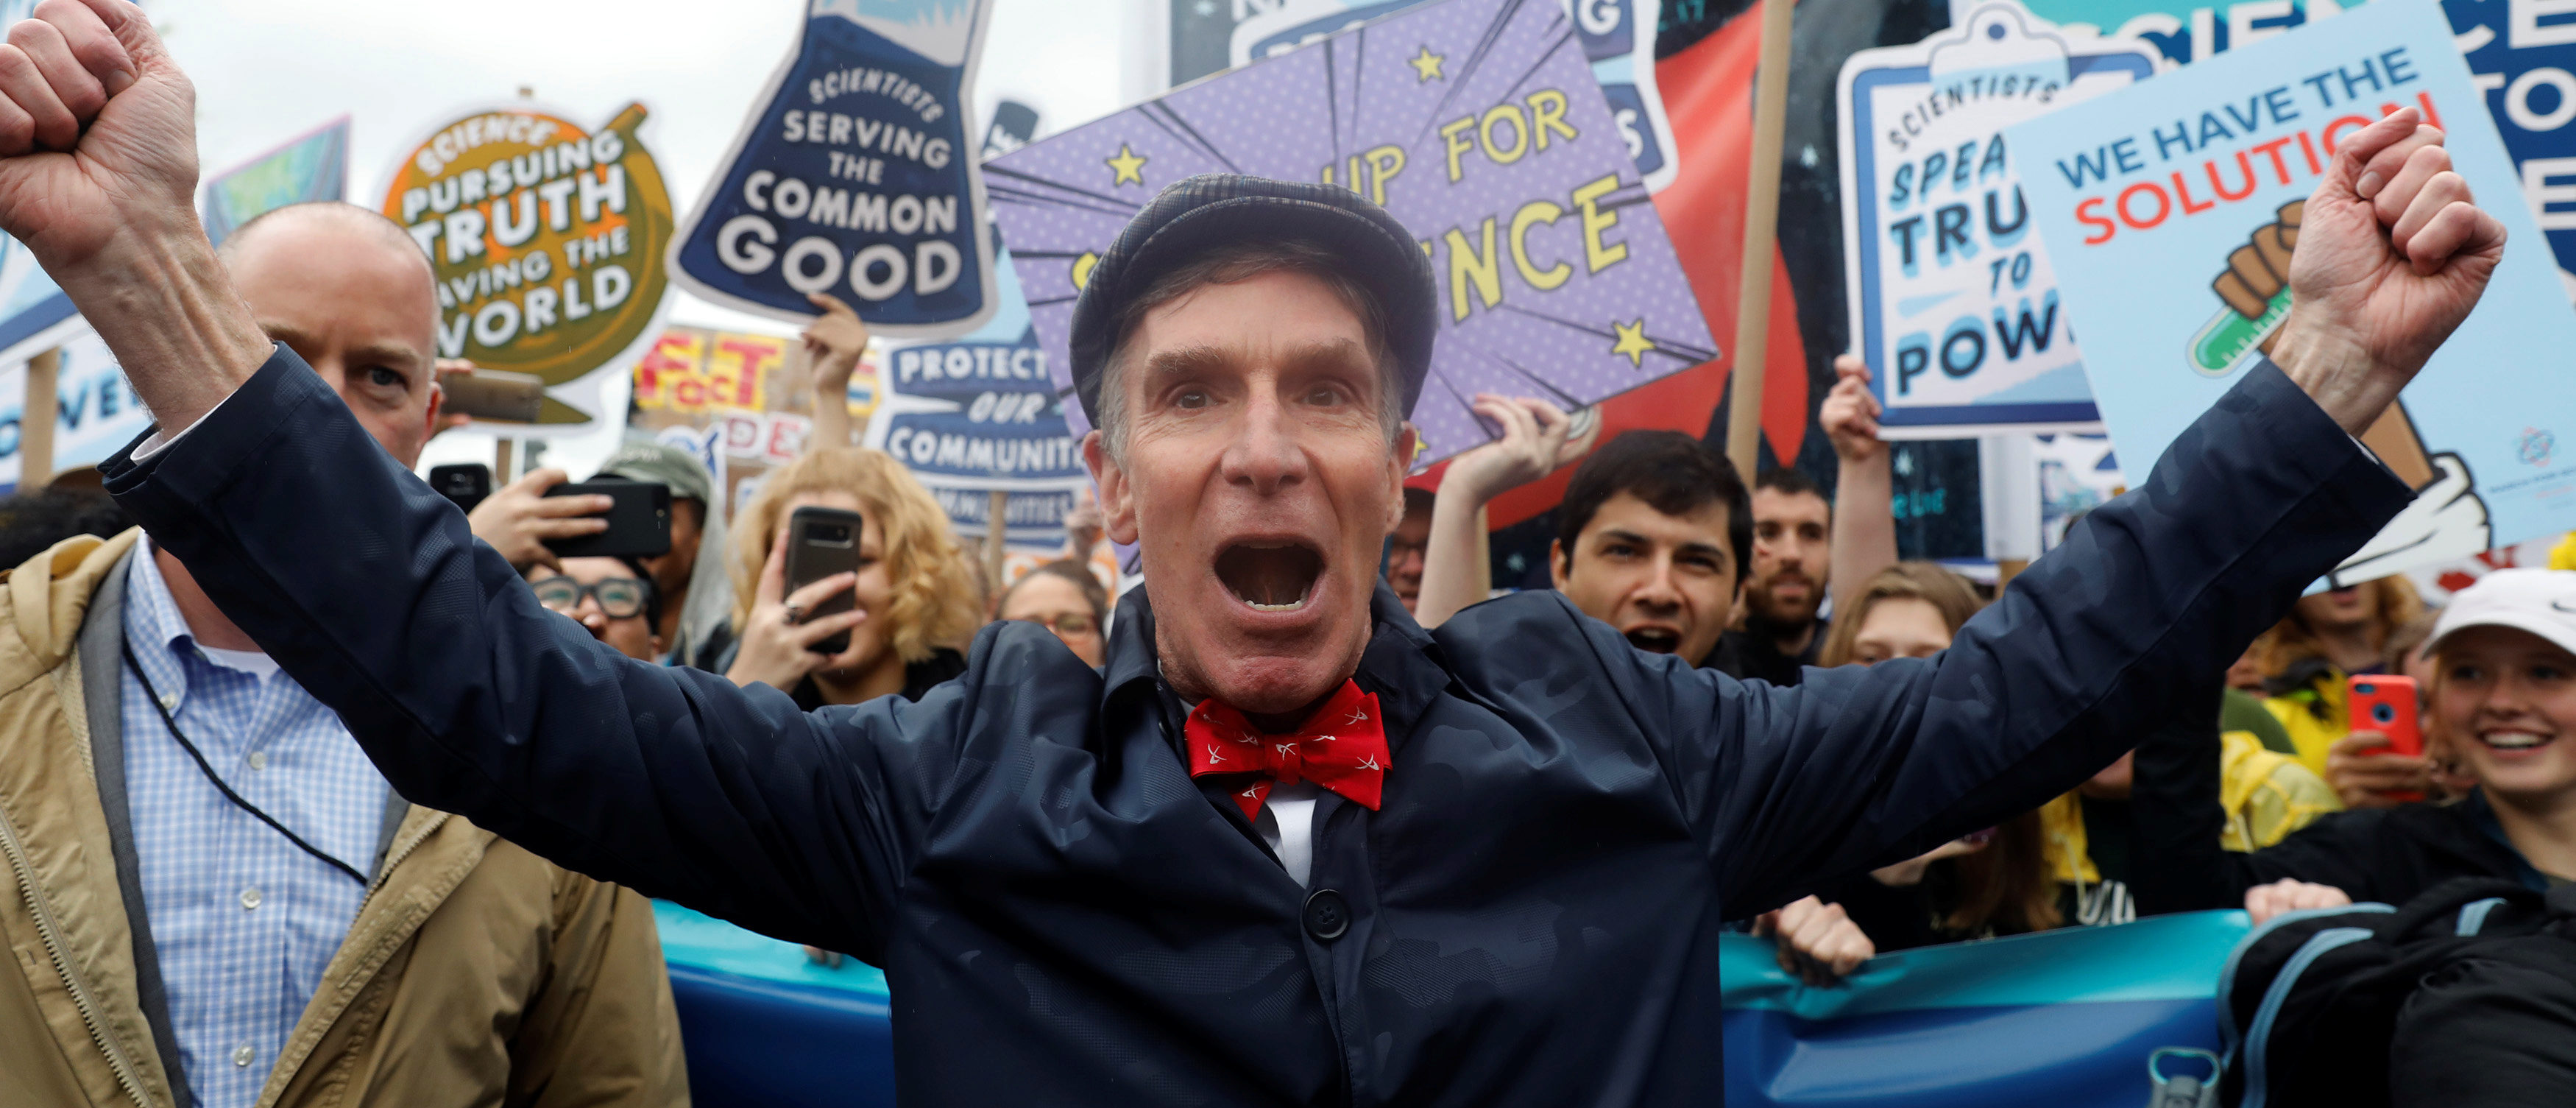 Bill Nye leads demonstrators on a march to the U.S. Capitol during the March for Science in Washington